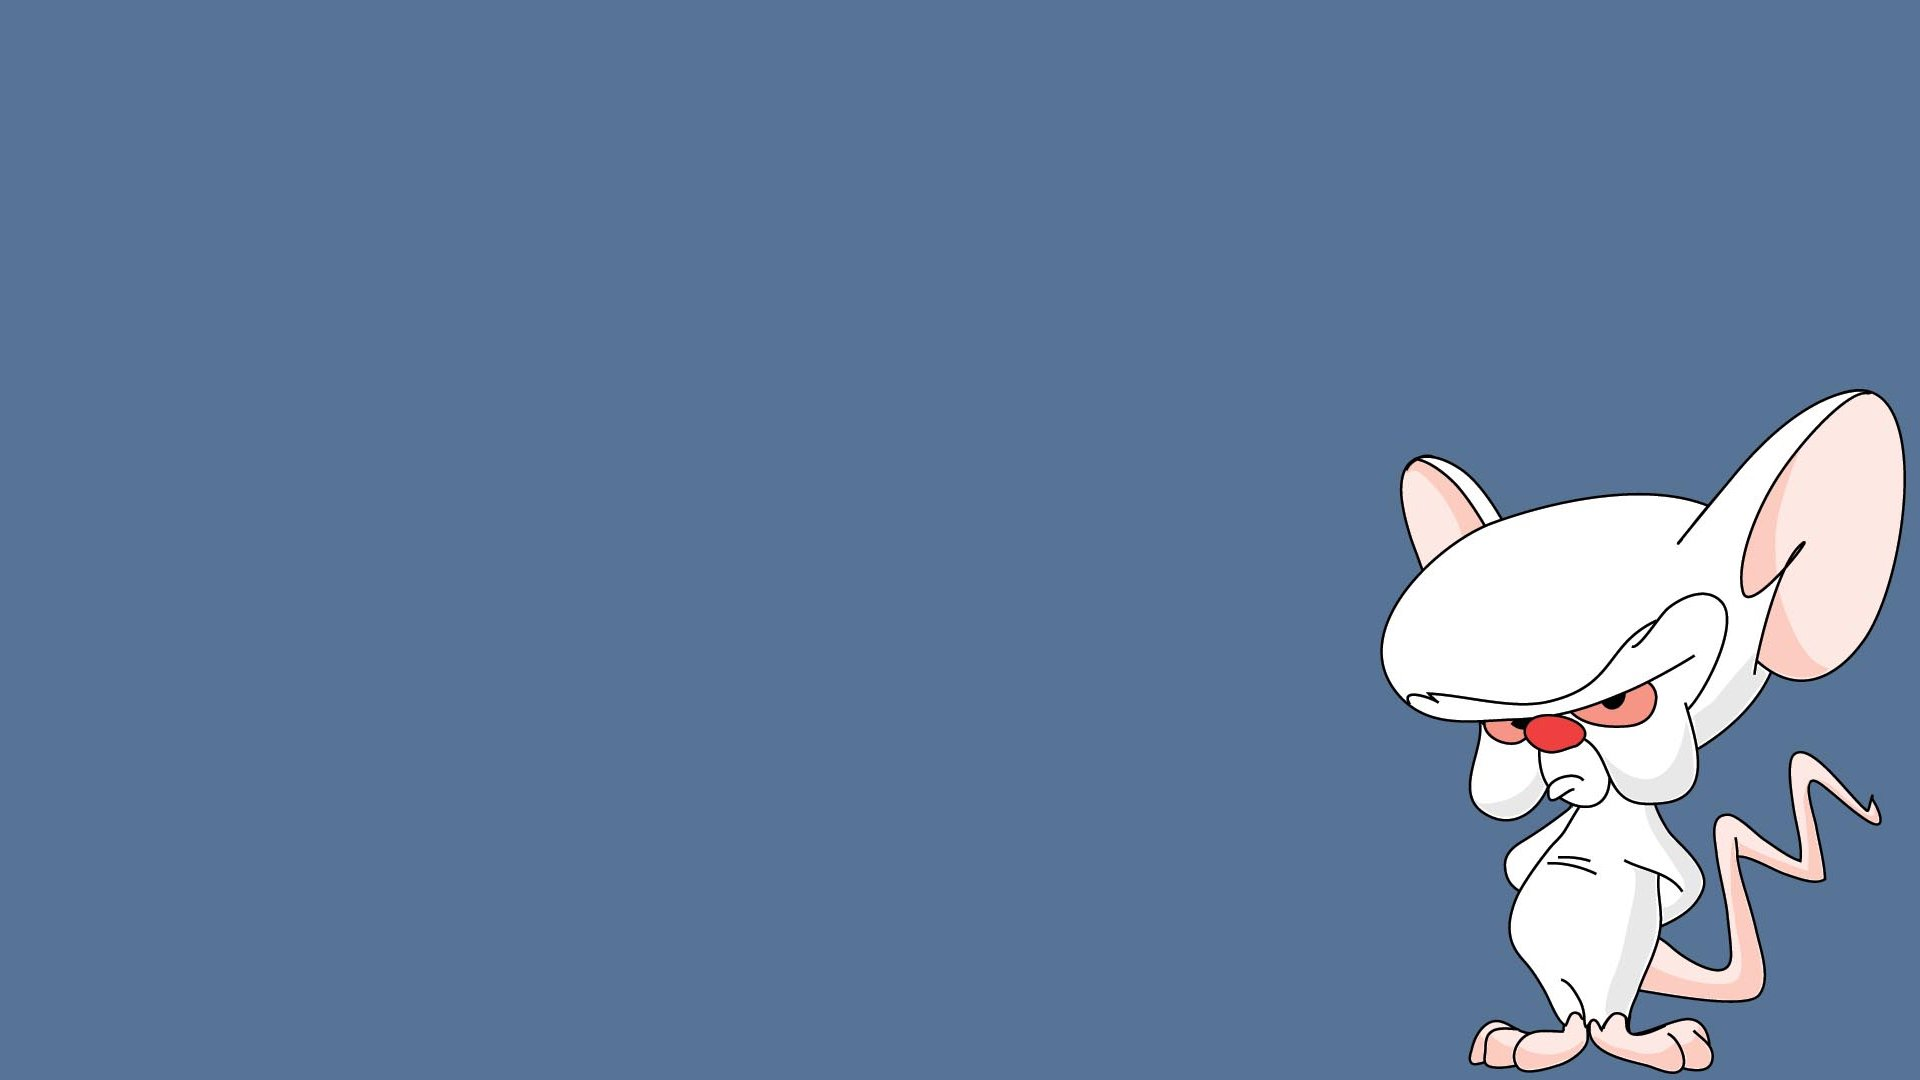 Pinky And The Brain Computer Wallpapers, Desktop Backgrounds ...